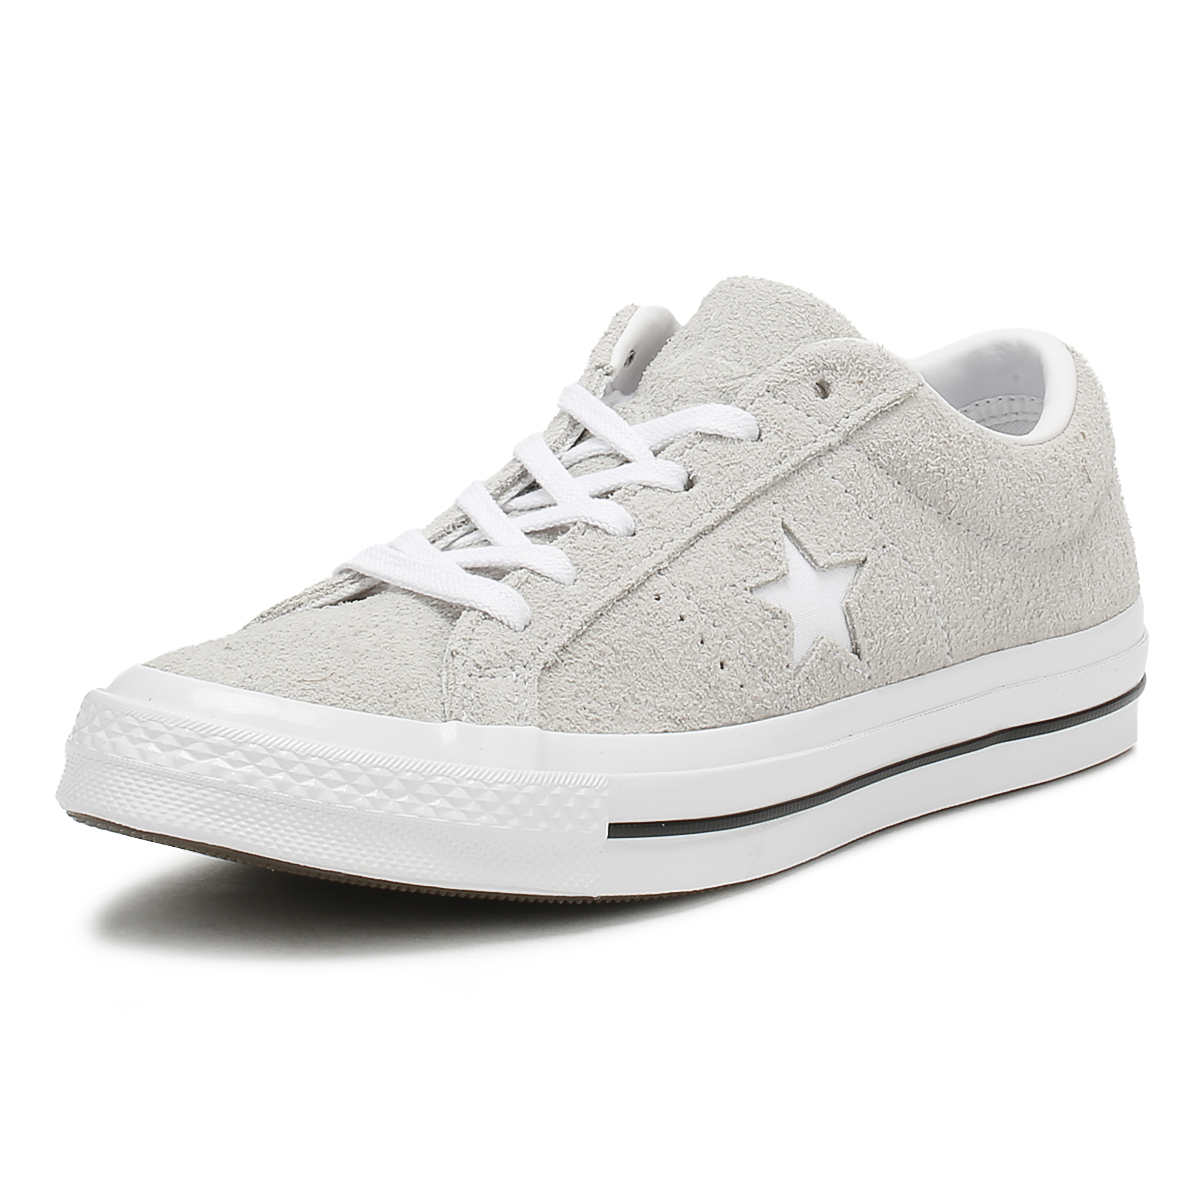 5bf3a0ccf5365f Details about Converse One Star Mens Ox Trainers Ash Grey Premium Suede  Lace Up Skate Shoes